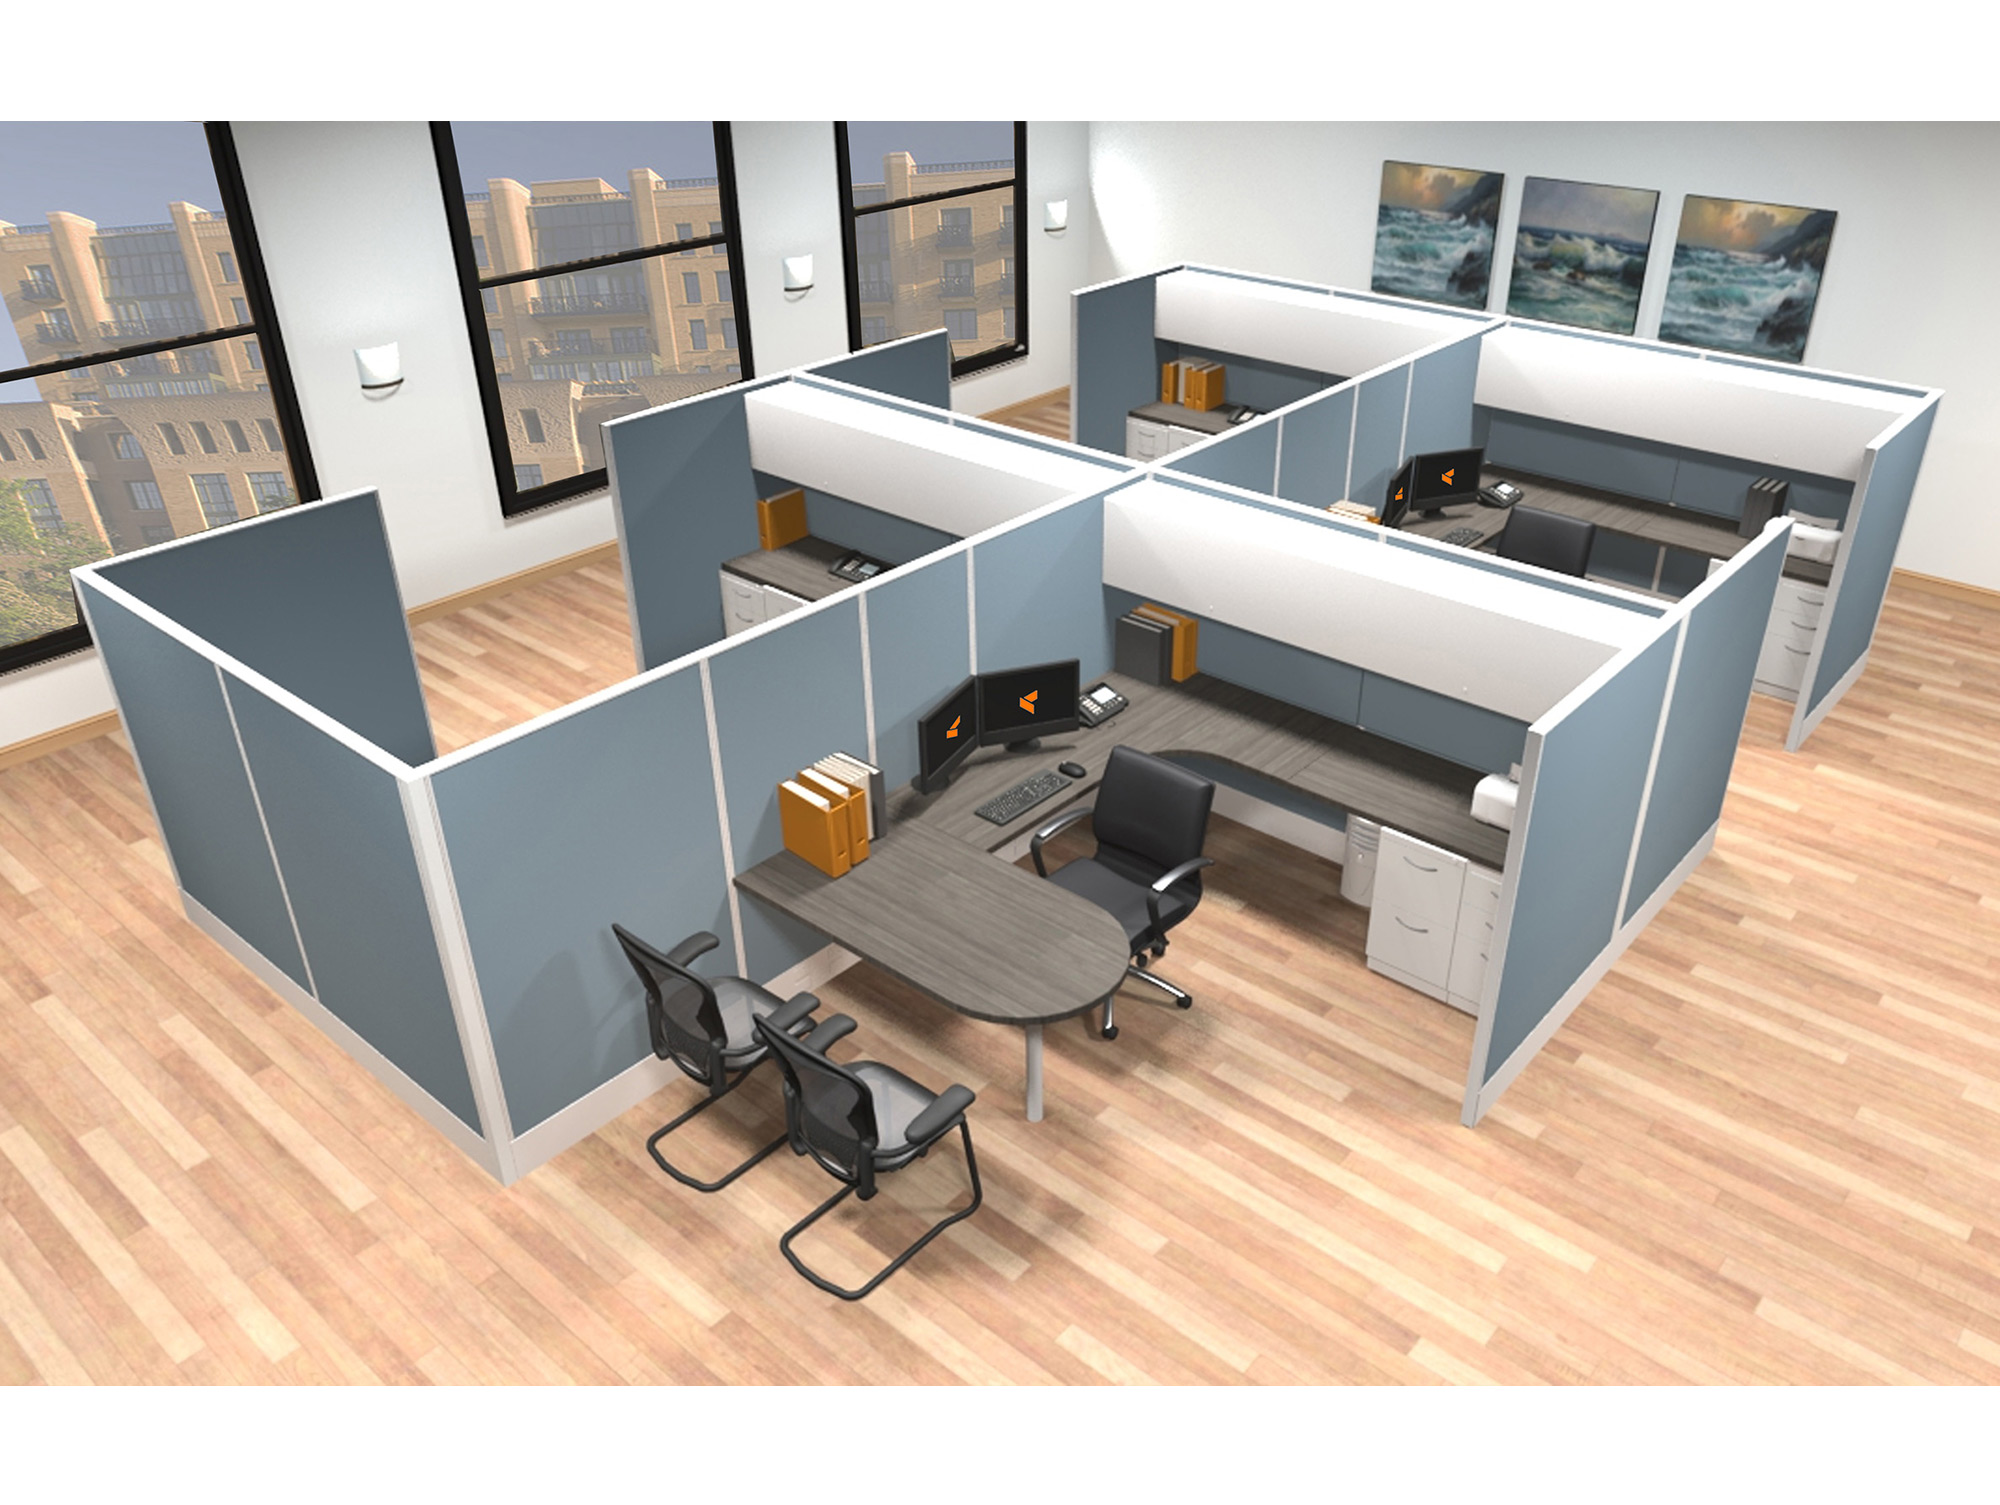 8x12 modular workstations from AIS - 6 Pack Cluster